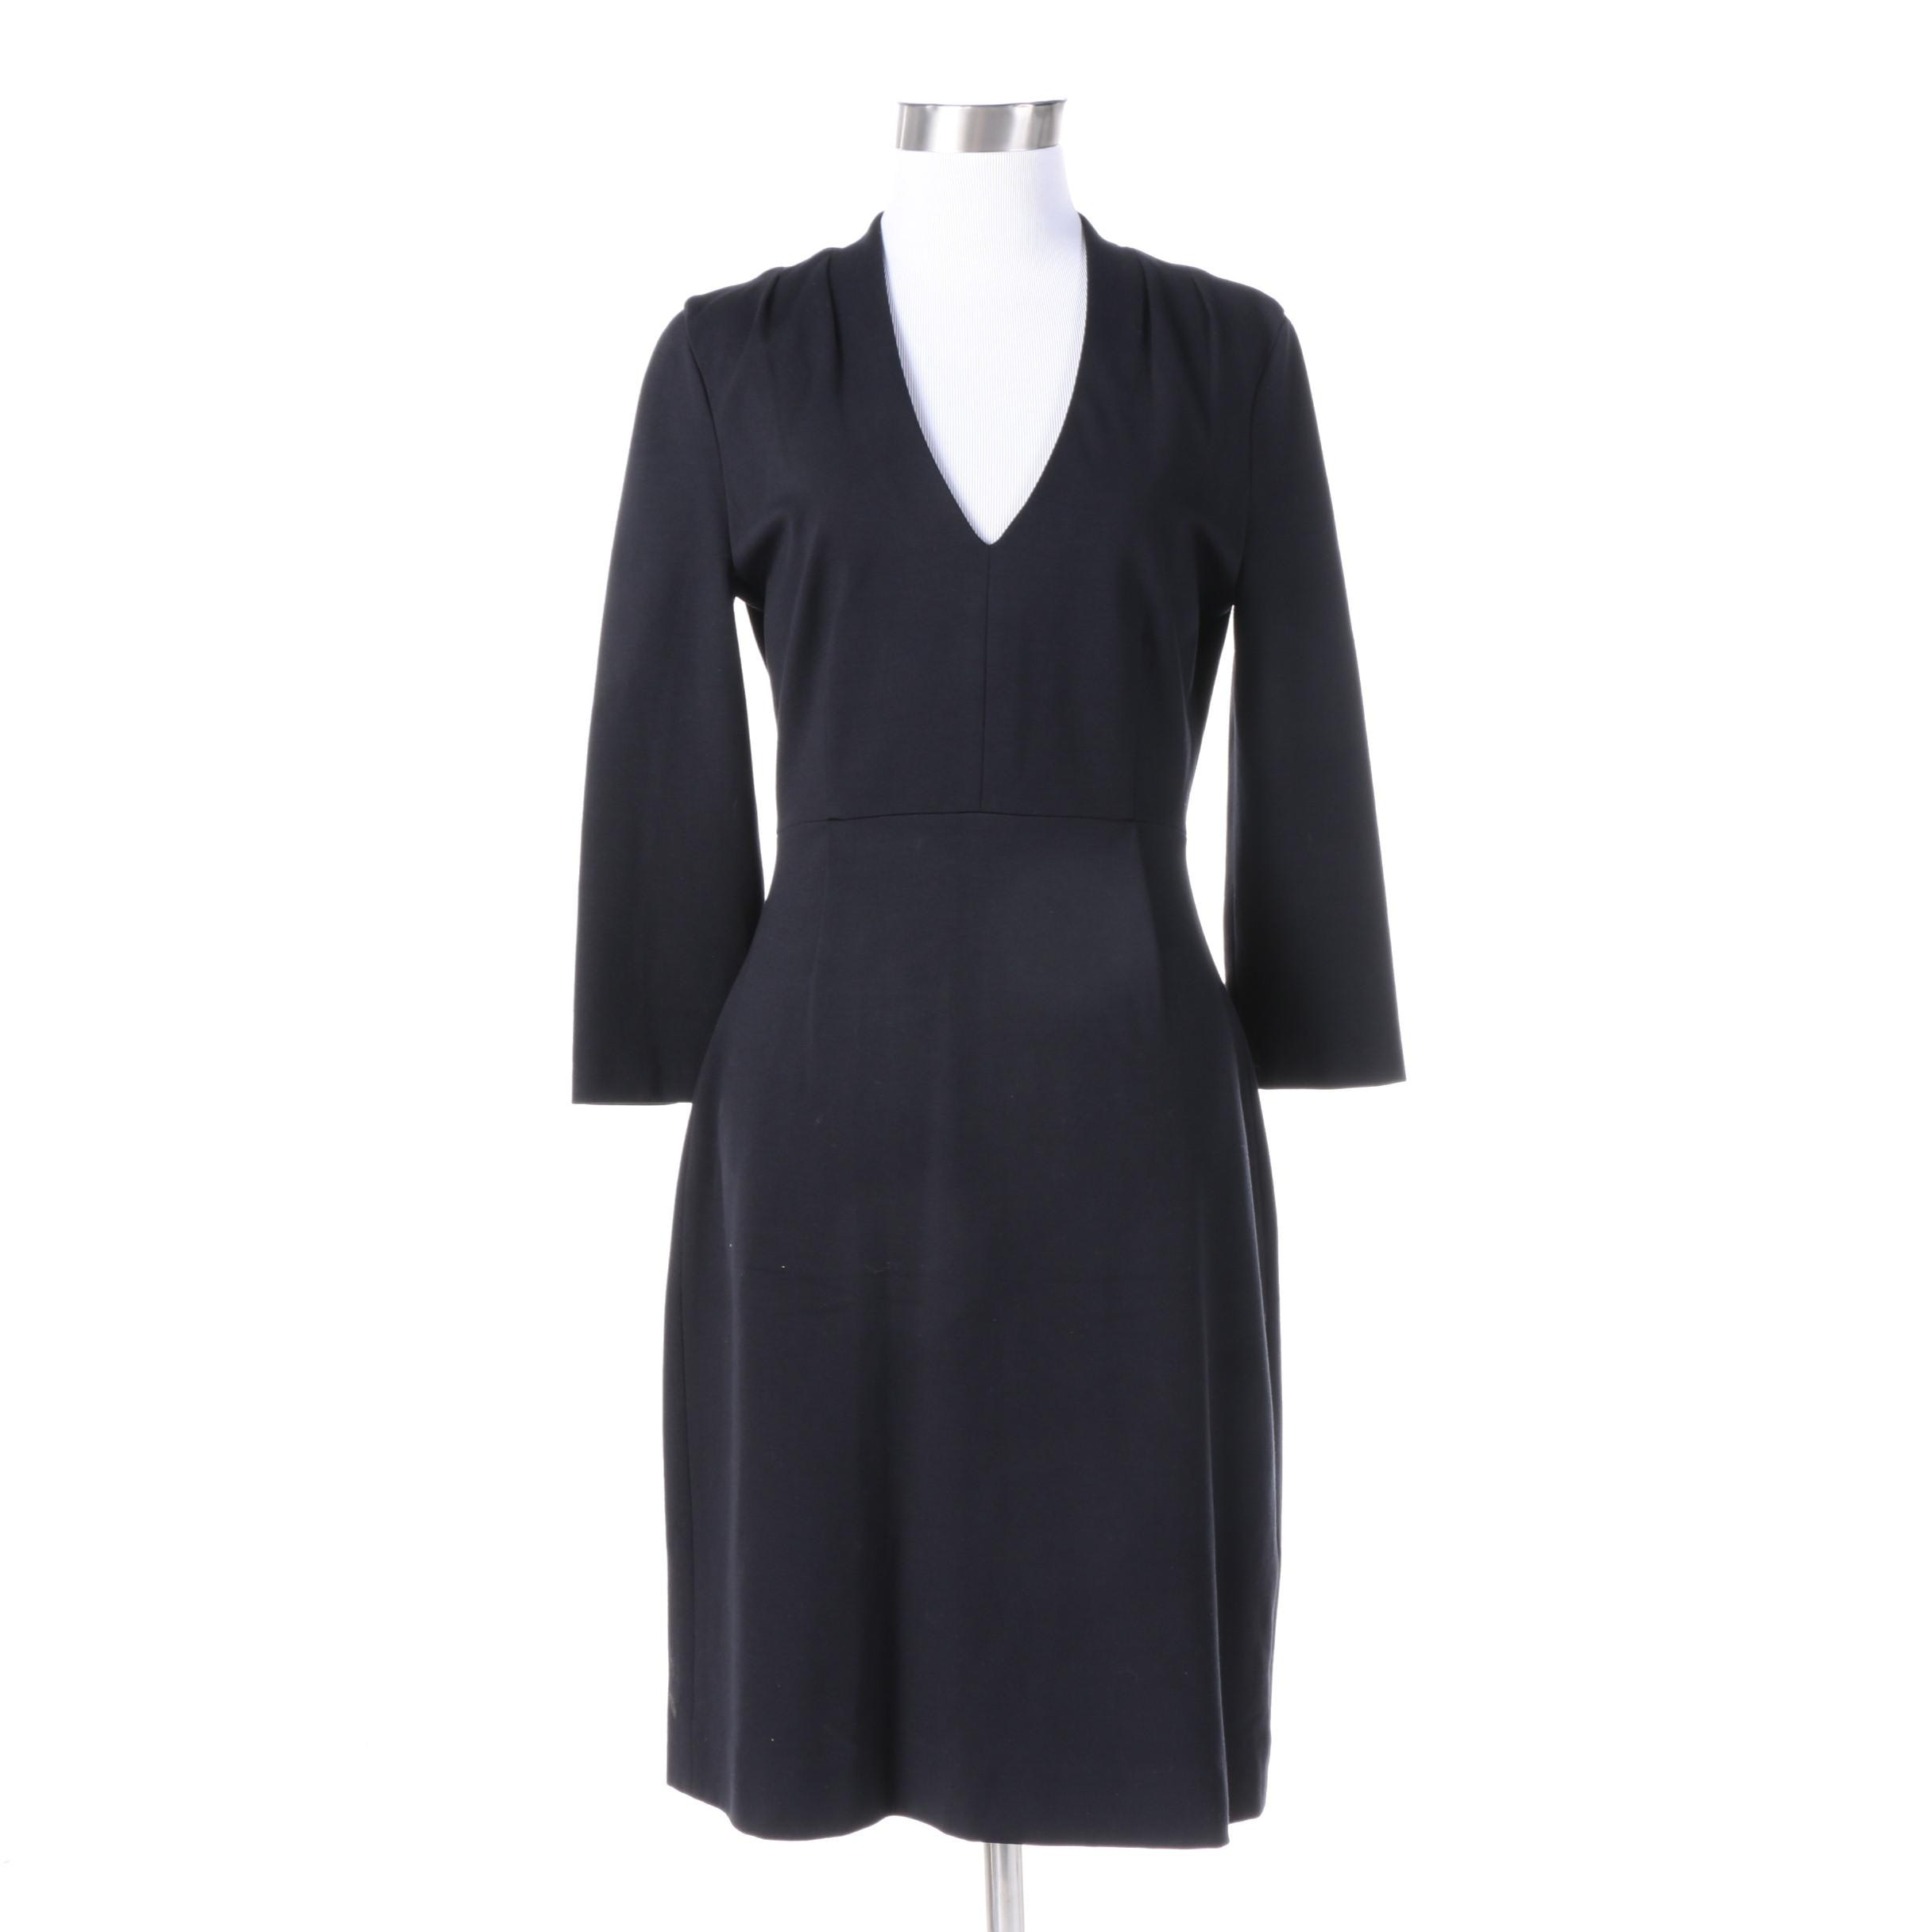 "Kate Spade New York ""Look For The Silver Lining"" Black Fitted Dress"